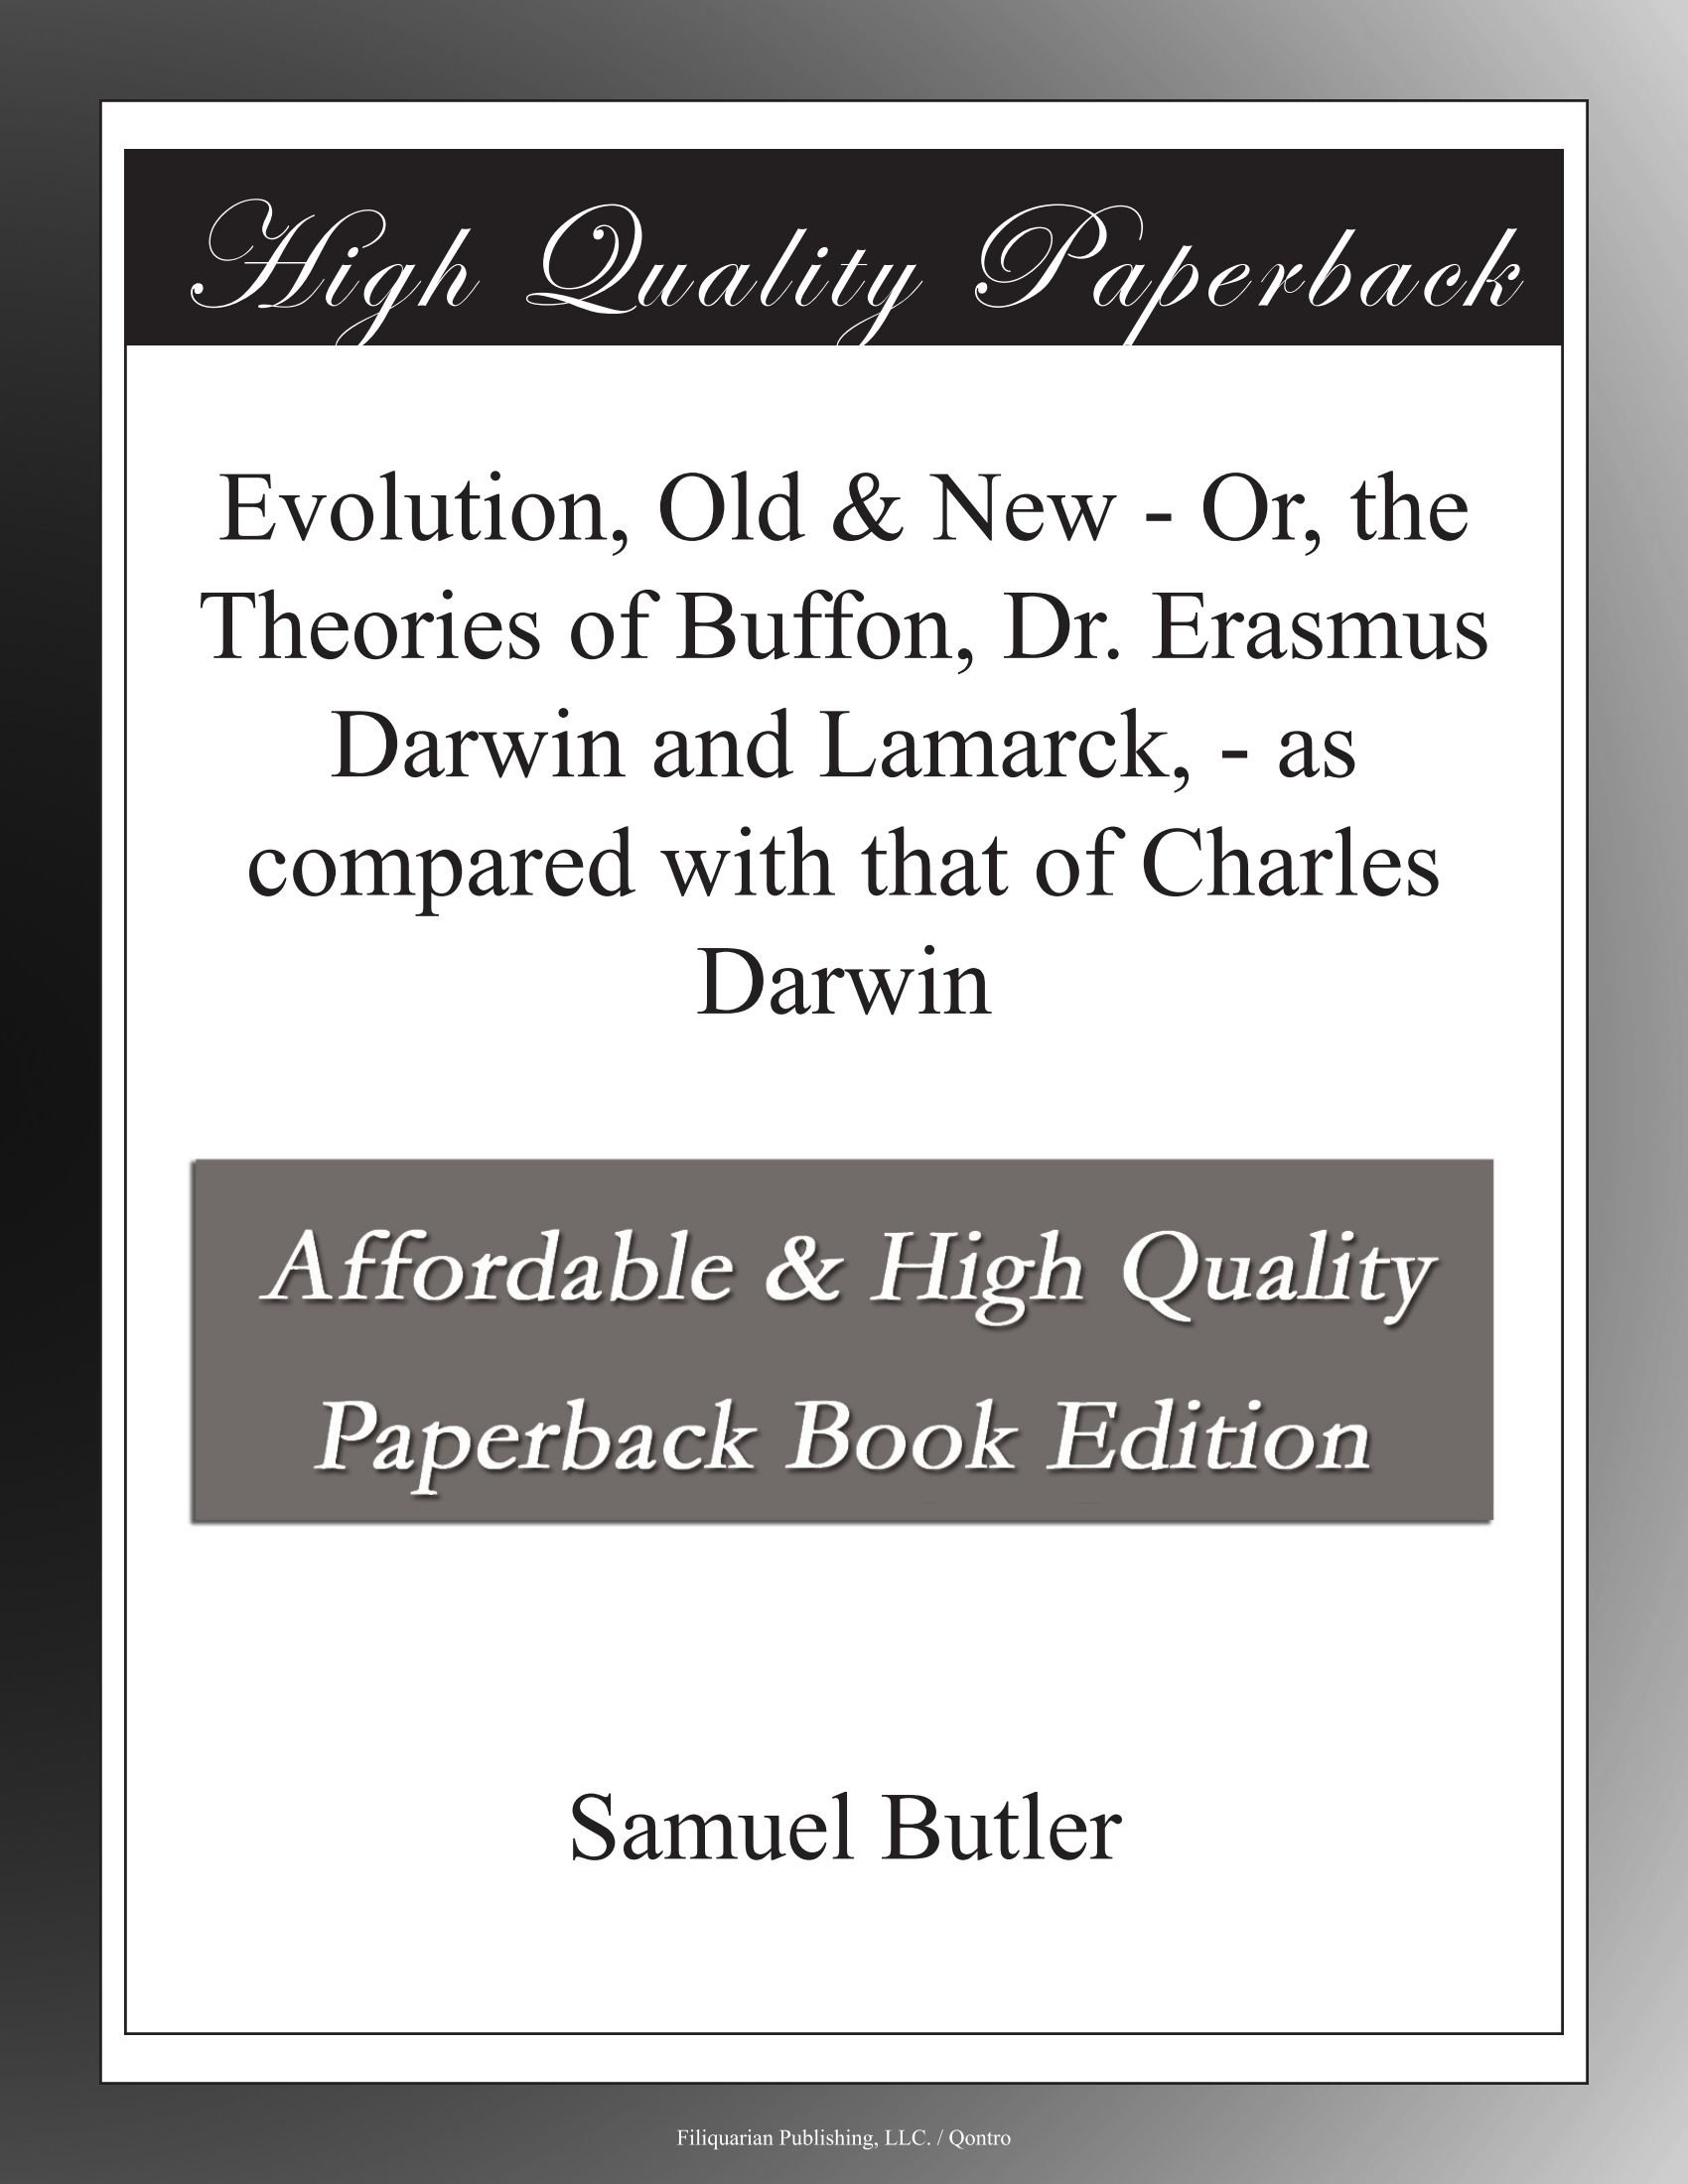 Read Online Evolution, Old & New - Or, the Theories of Buffon, Dr. Erasmus Darwin and Lamarck, - as compared with that of Charles Darwin Text fb2 book